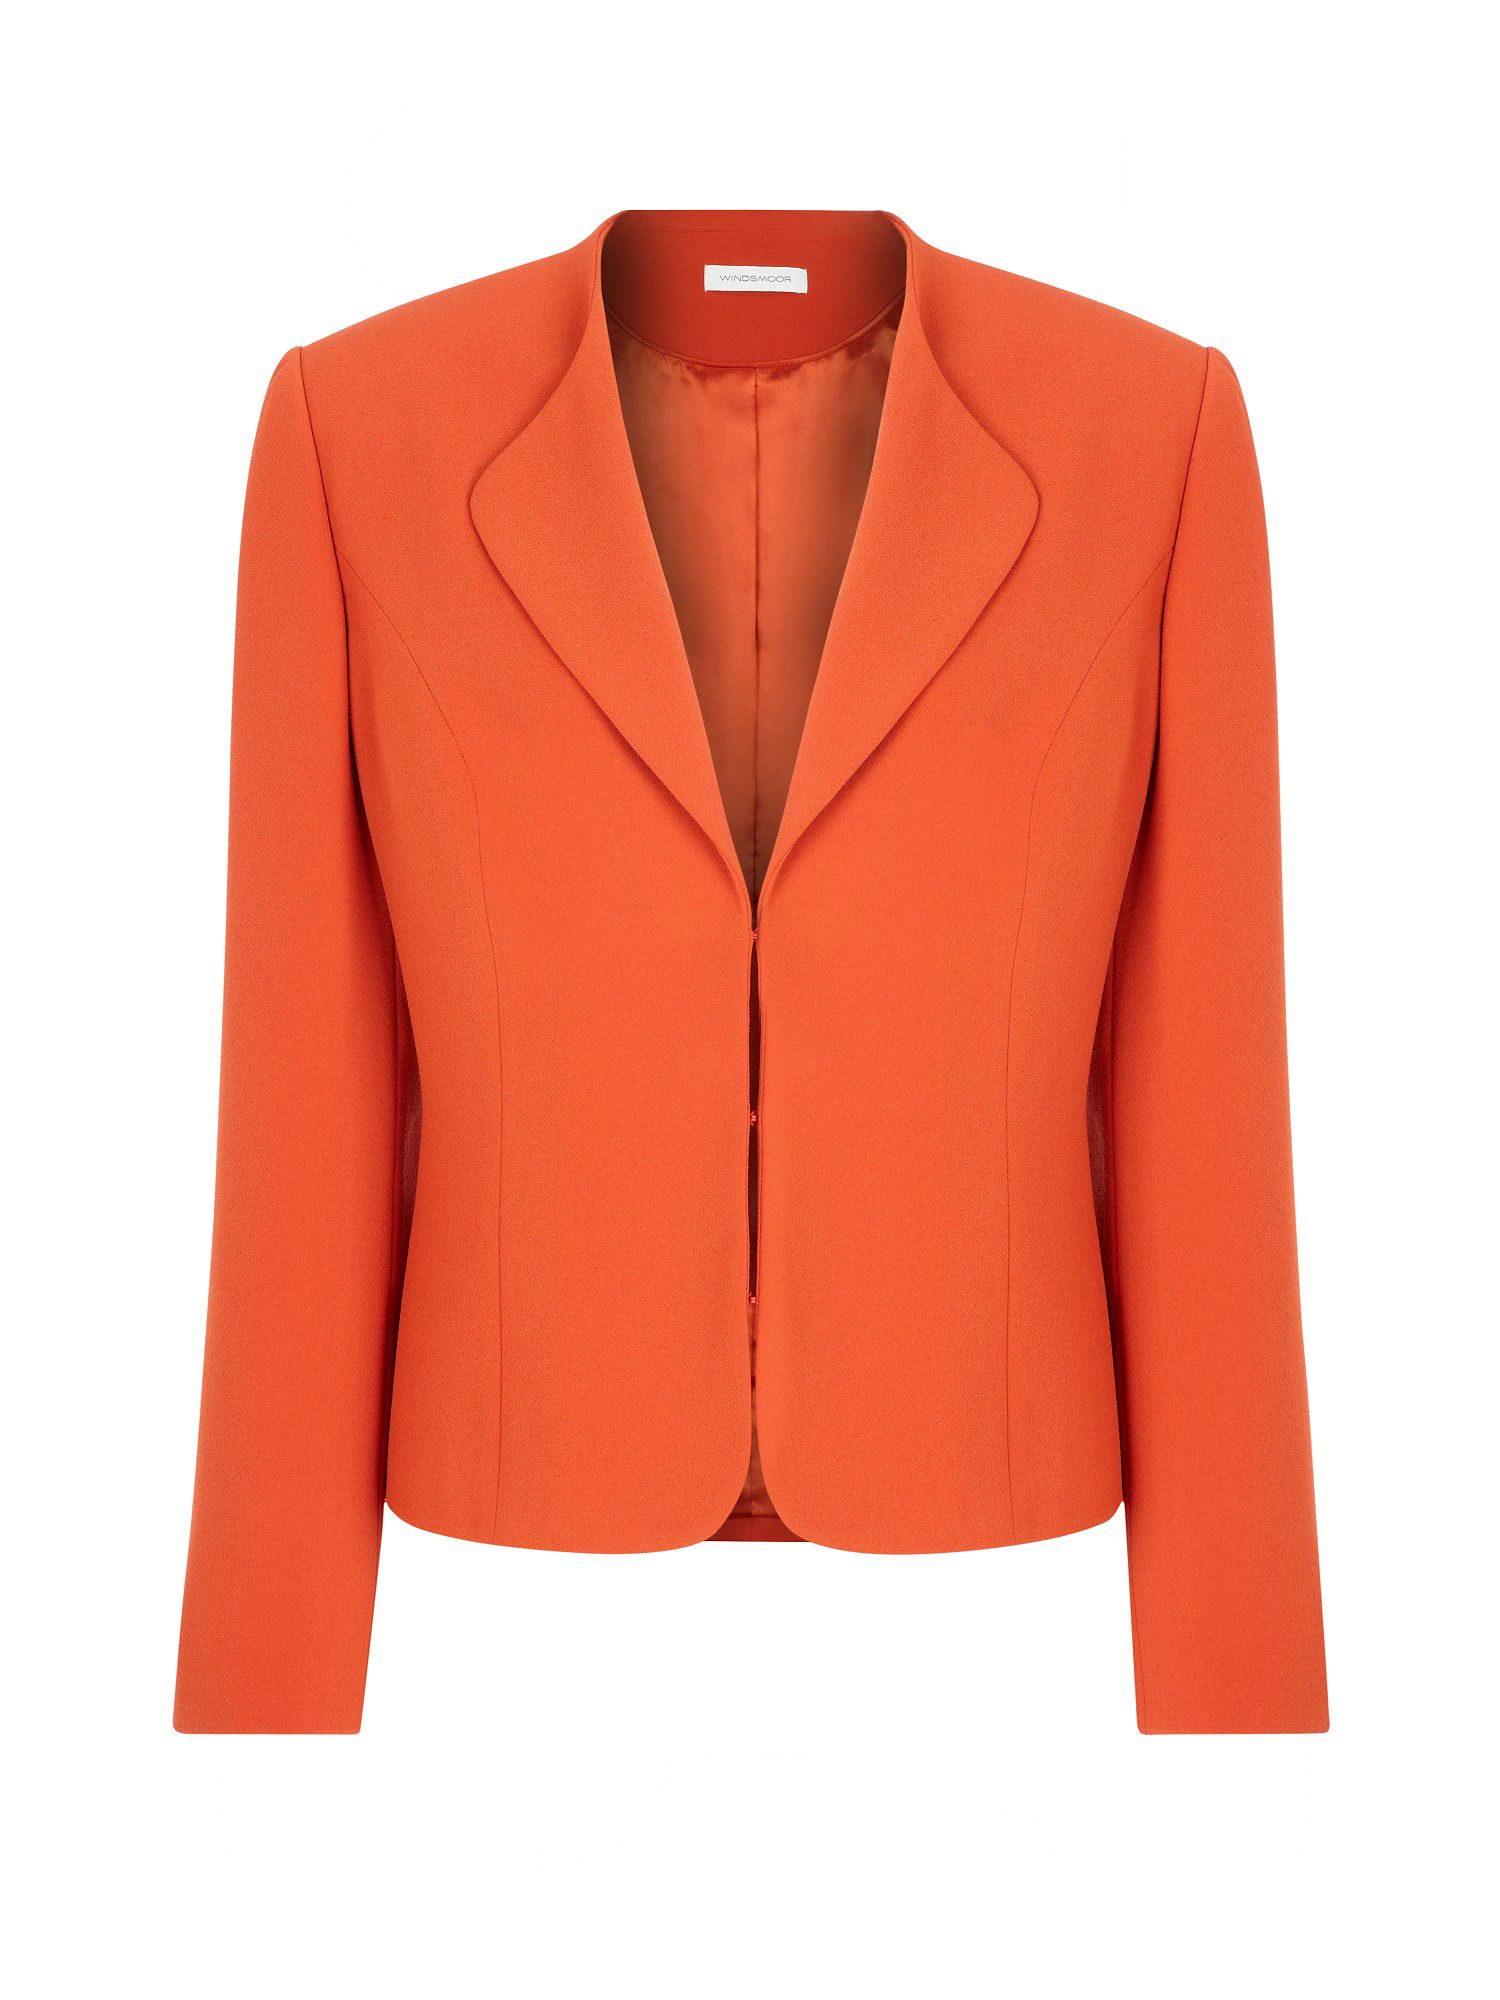 Orange tailored jacket